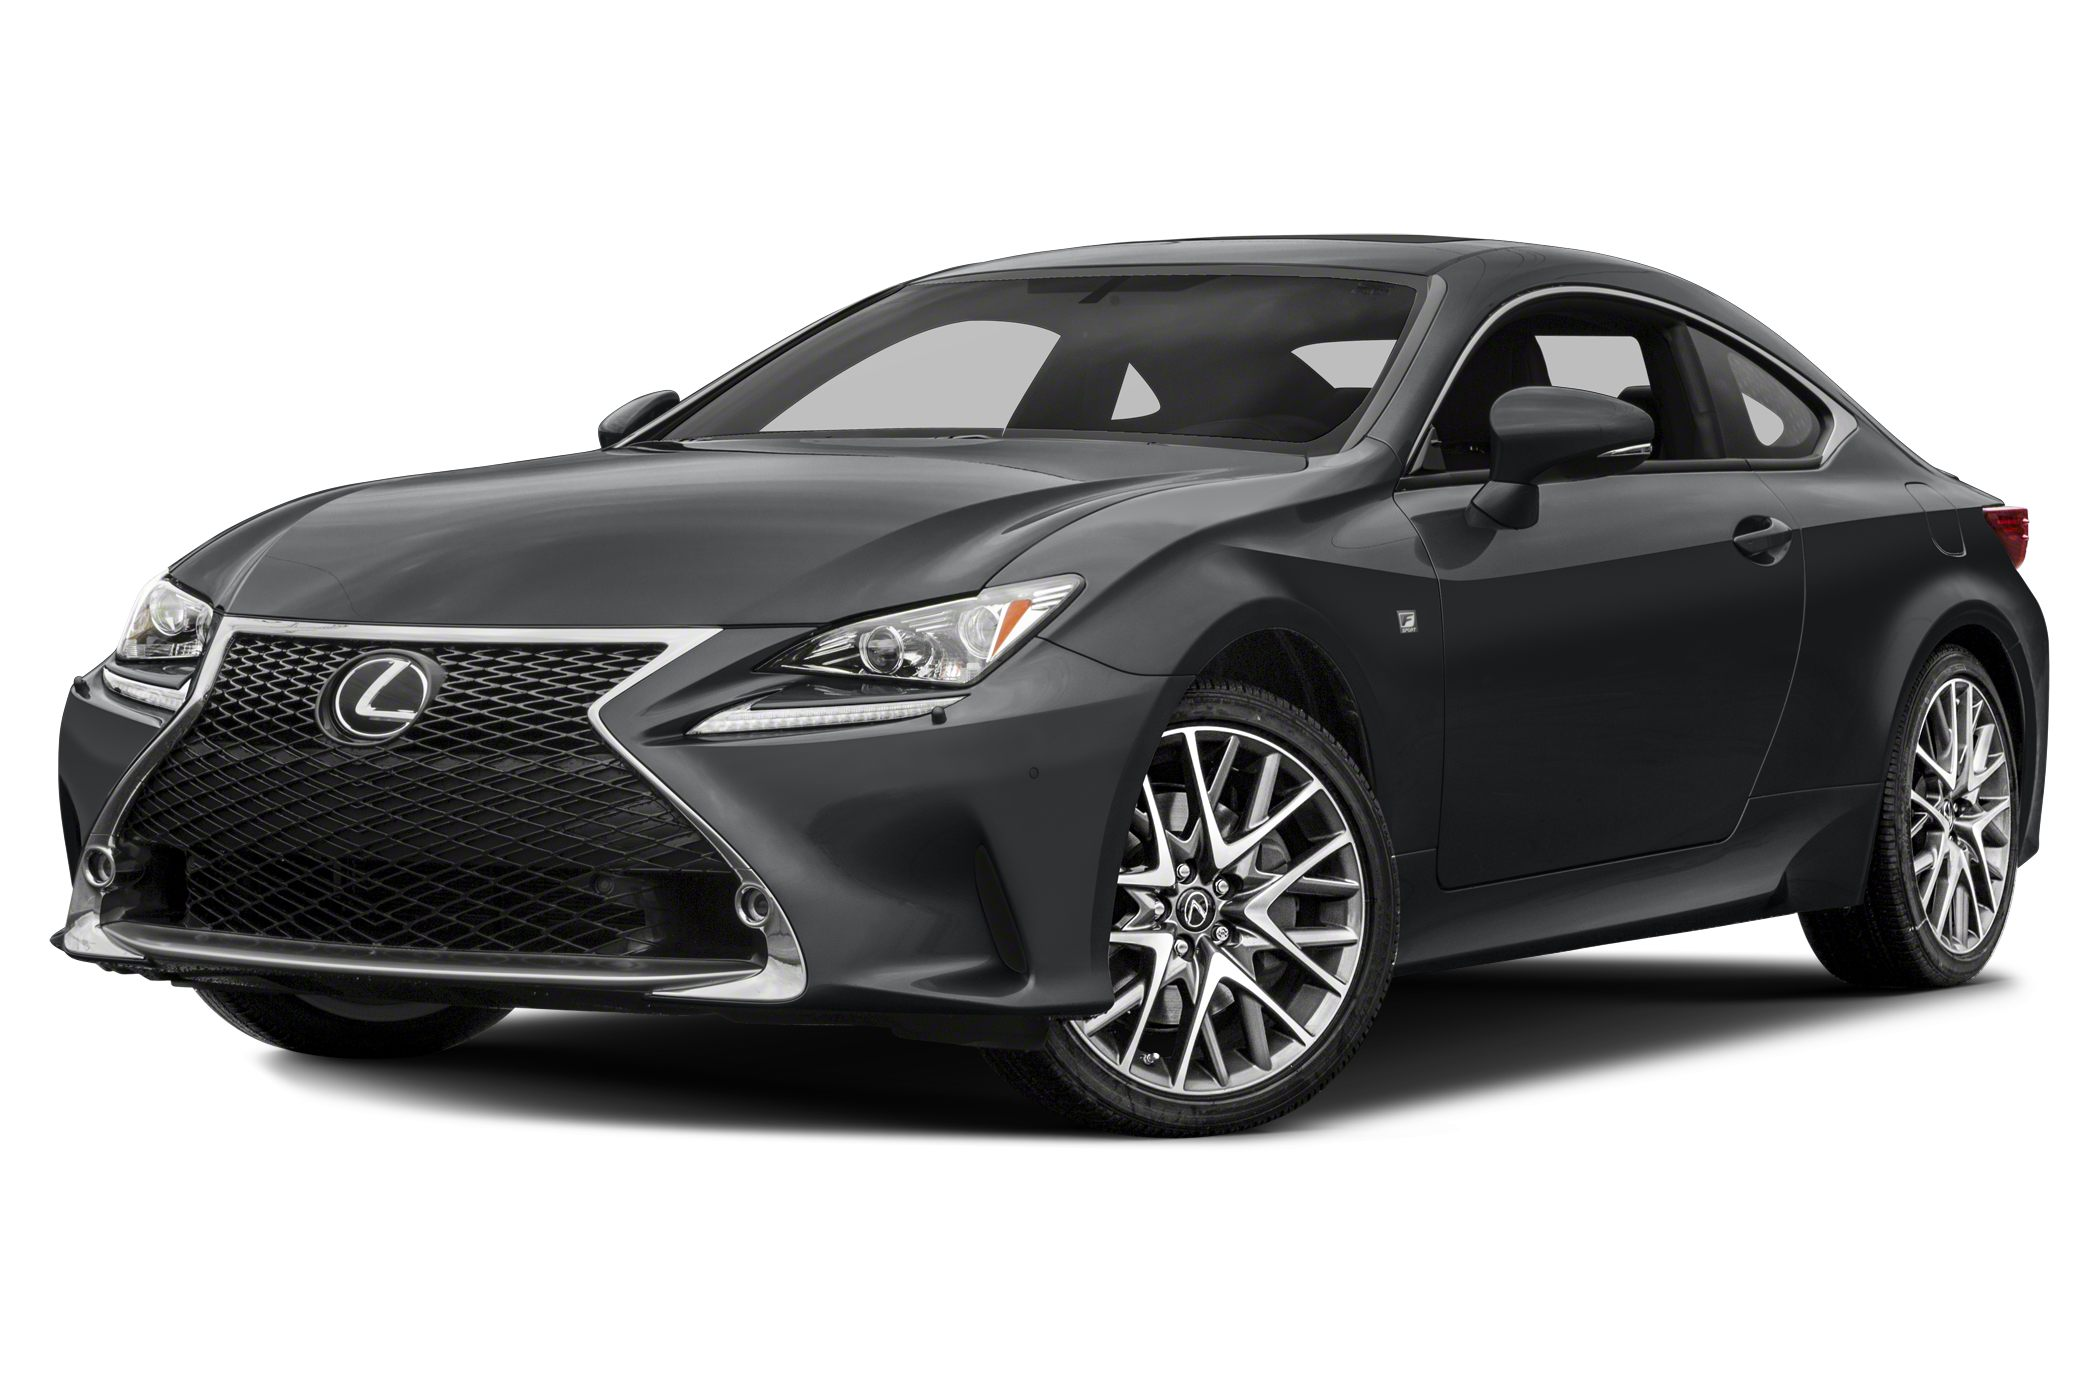 lexus rc 300 news photos and buying information autoblog. Black Bedroom Furniture Sets. Home Design Ideas